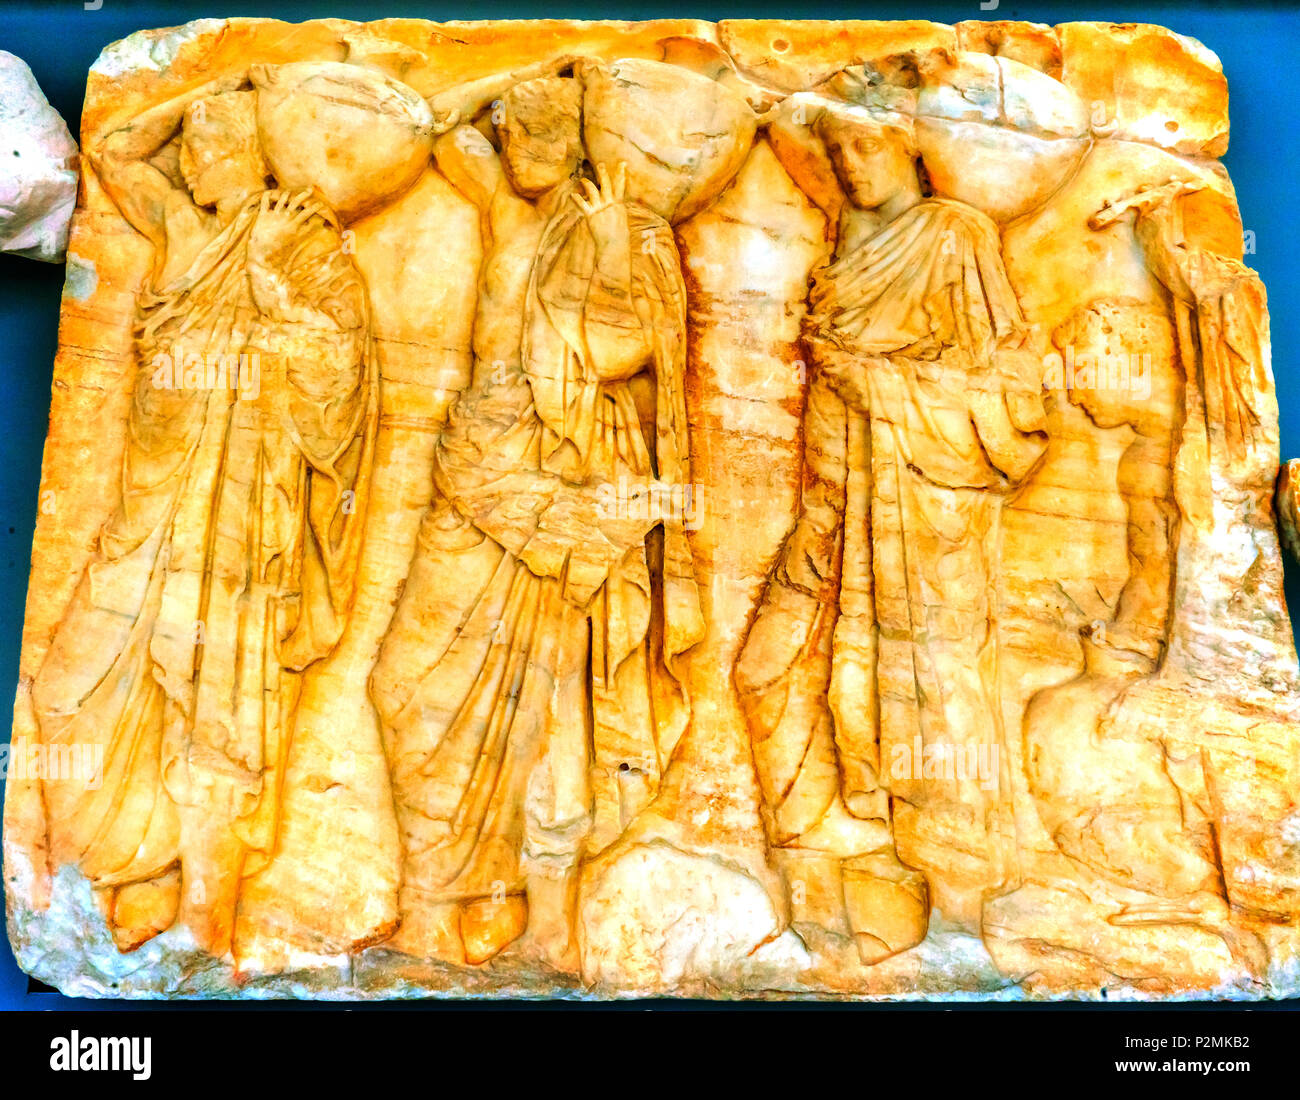 Worshipers Carying Offerings to Temple Marble Panel Parthenon Acropolis Athens Greece.  Parthenon created 438 BC and is symbol of ancient Greece. Pane - Stock Image